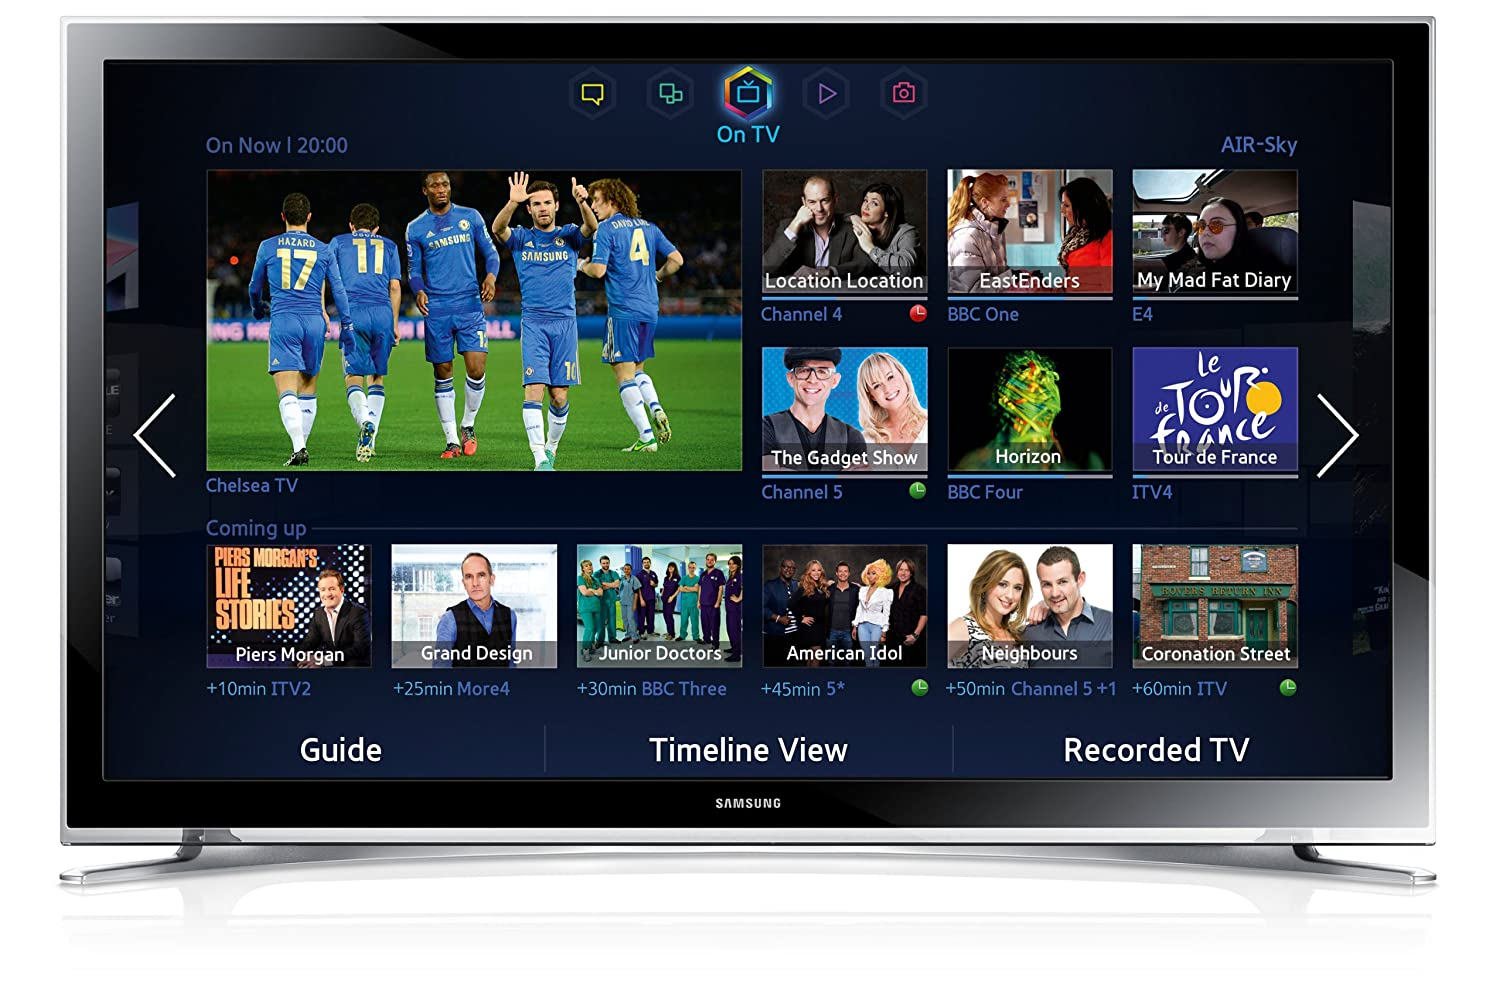 samsung tv 32 inch smart. Samsung UE32F4500 32-inch Widescreen HD Ready LED Television (discontinued By Manufacturer): Amazon.co.uk: TV Tv 32 Inch Smart